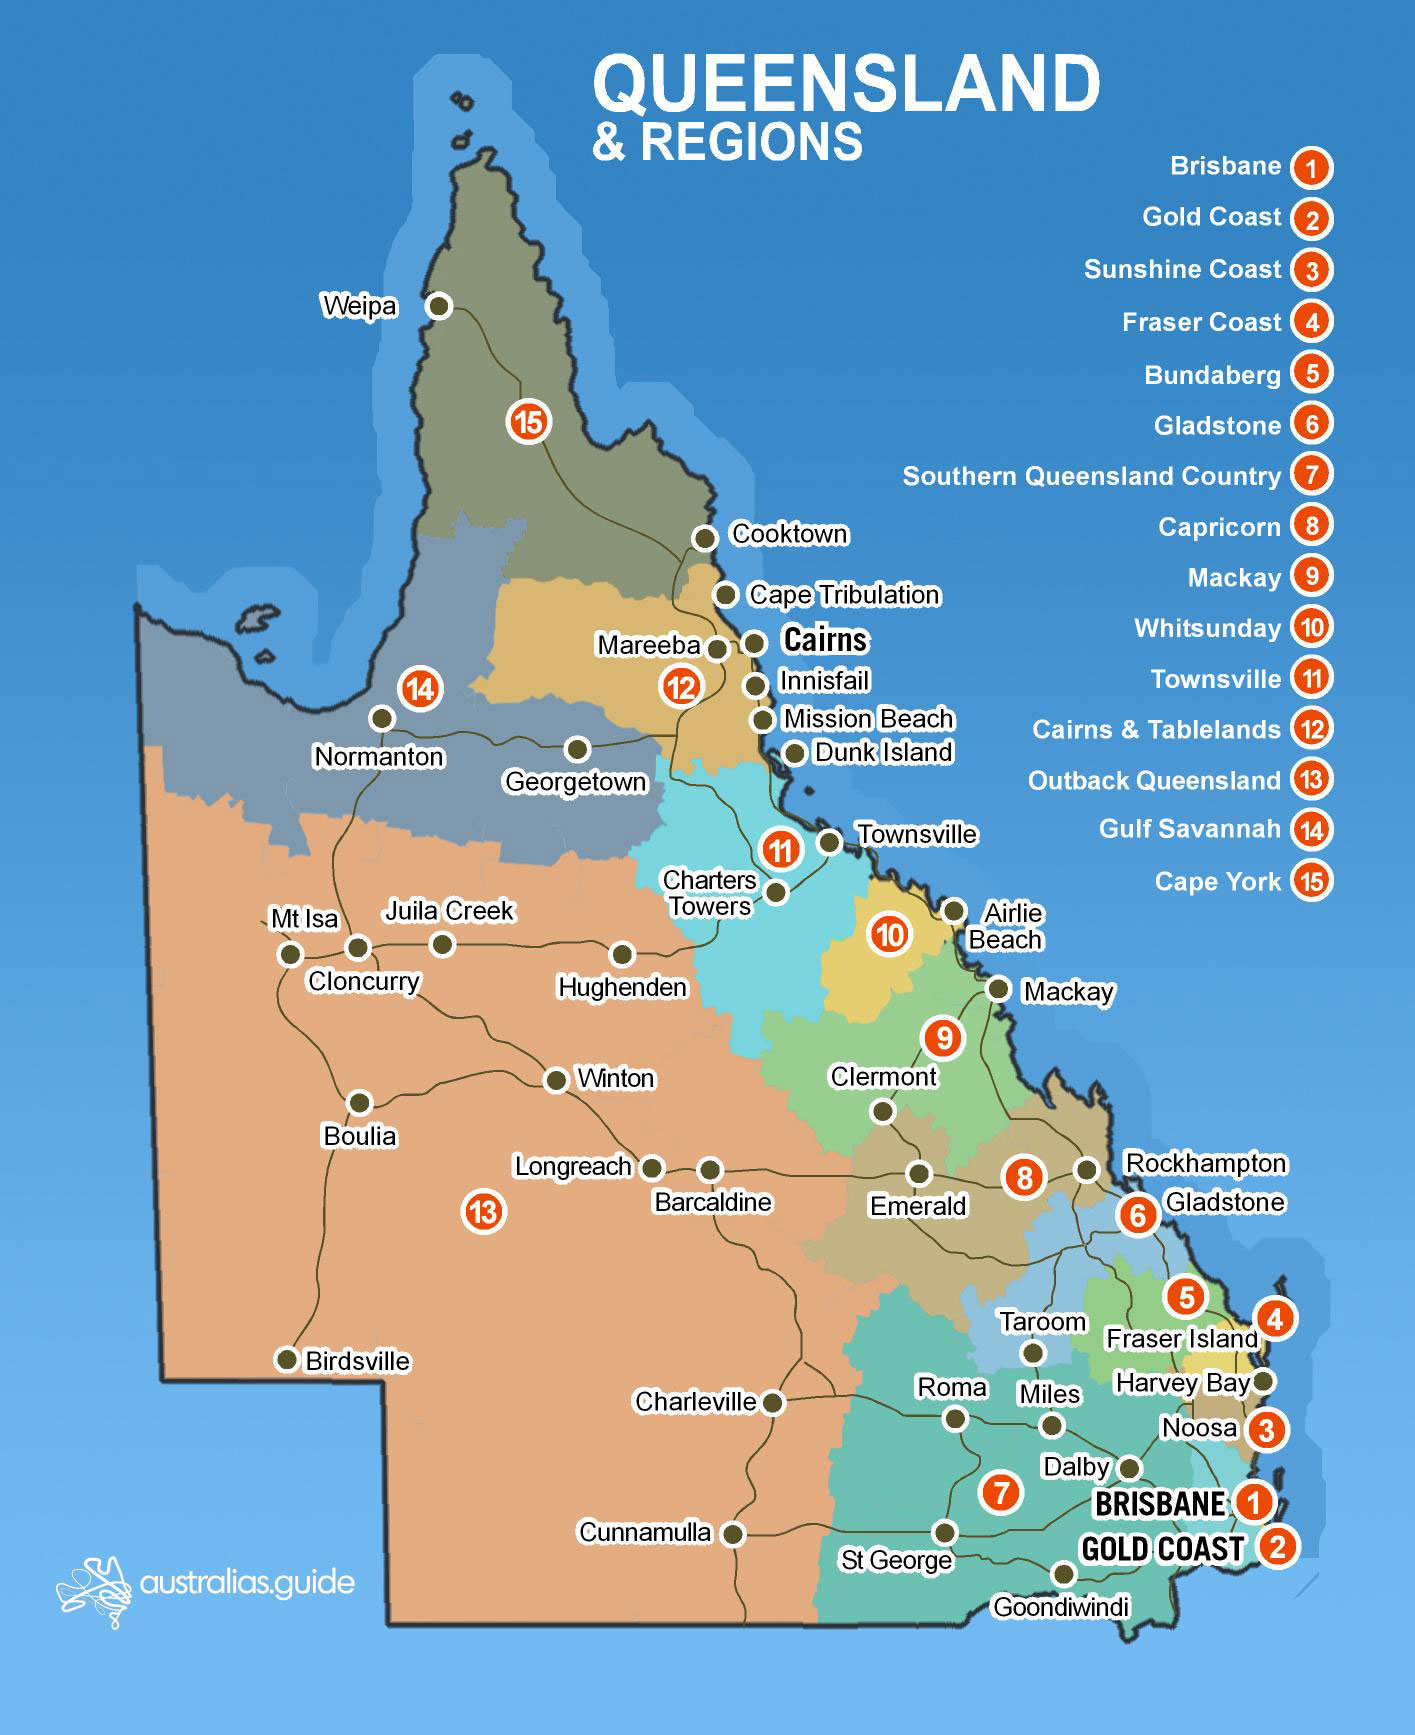 Queensland: A State of Excitement